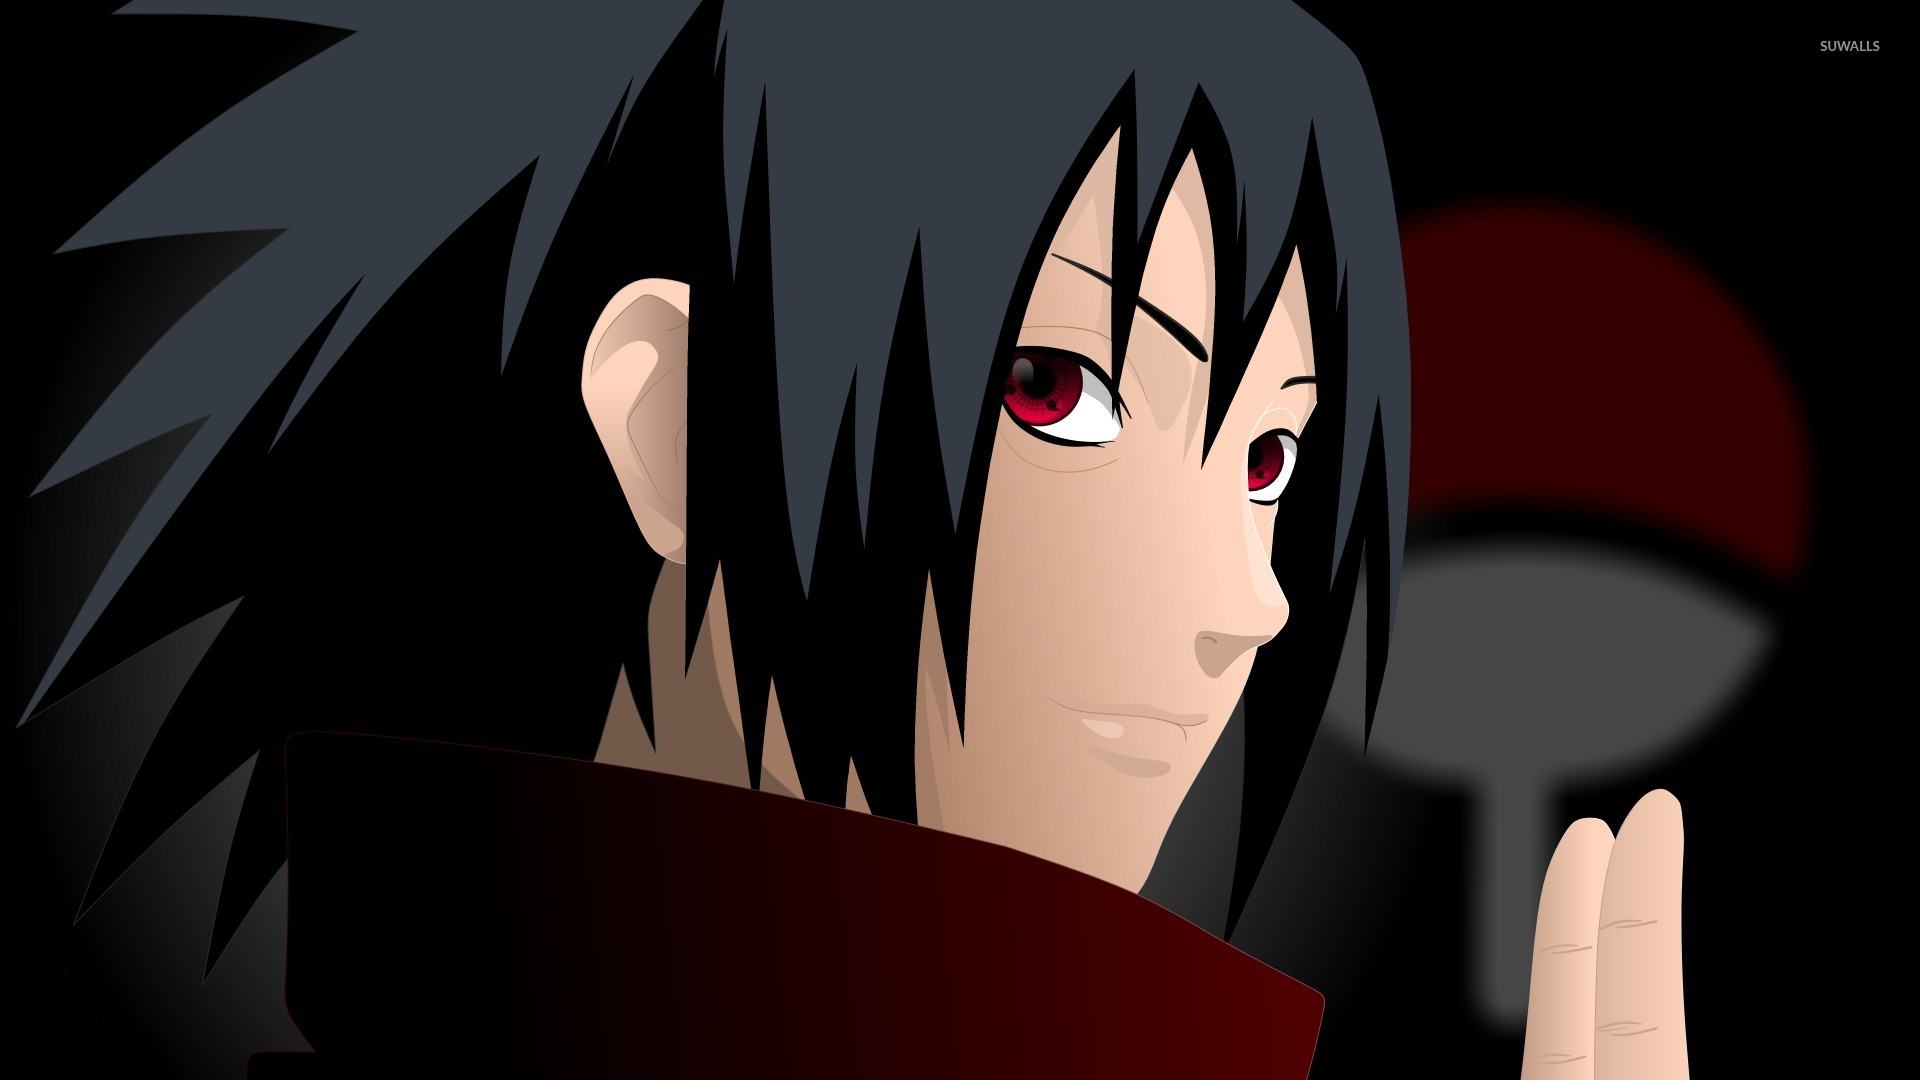 Madara-Uchiha-Hd-afari-»-Home-Design-wallpaper-wp3608196